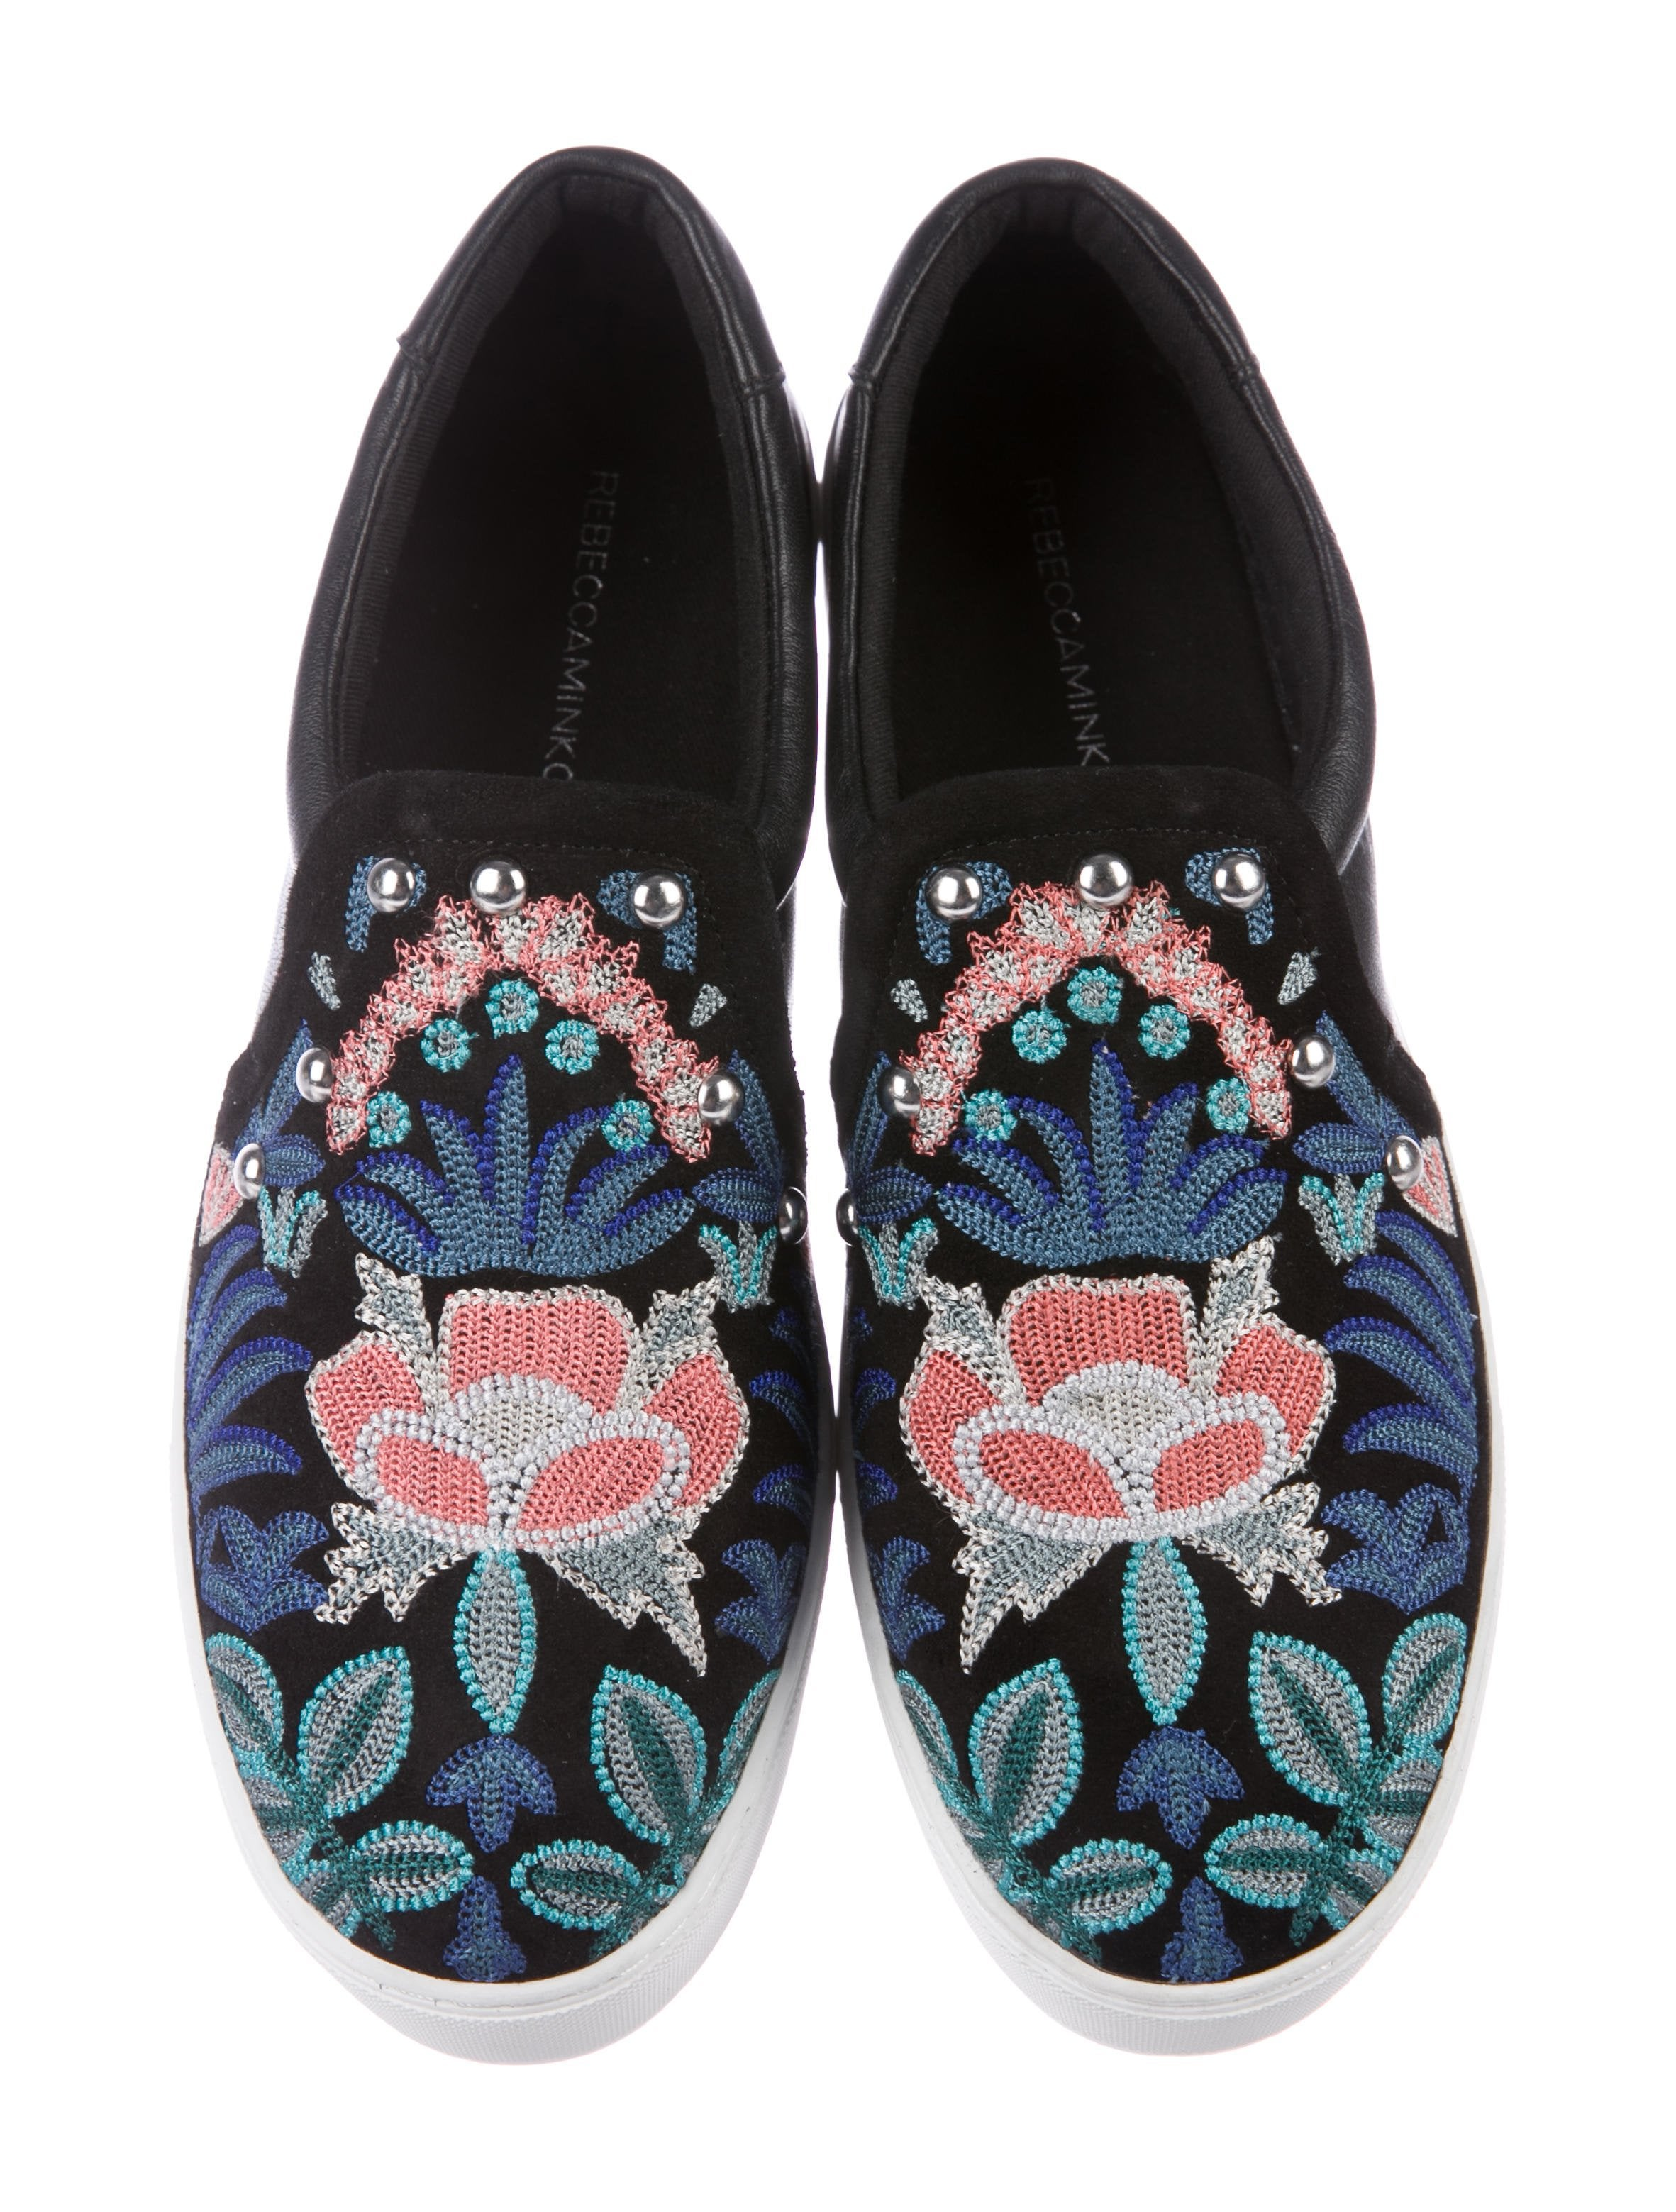 Rebecca Minkoff Embroidered Slip-On Sneakers cheap sale amazing price buy cheap footlocker finishline real online free shipping sneakernews for cheap online b0EgAasTT